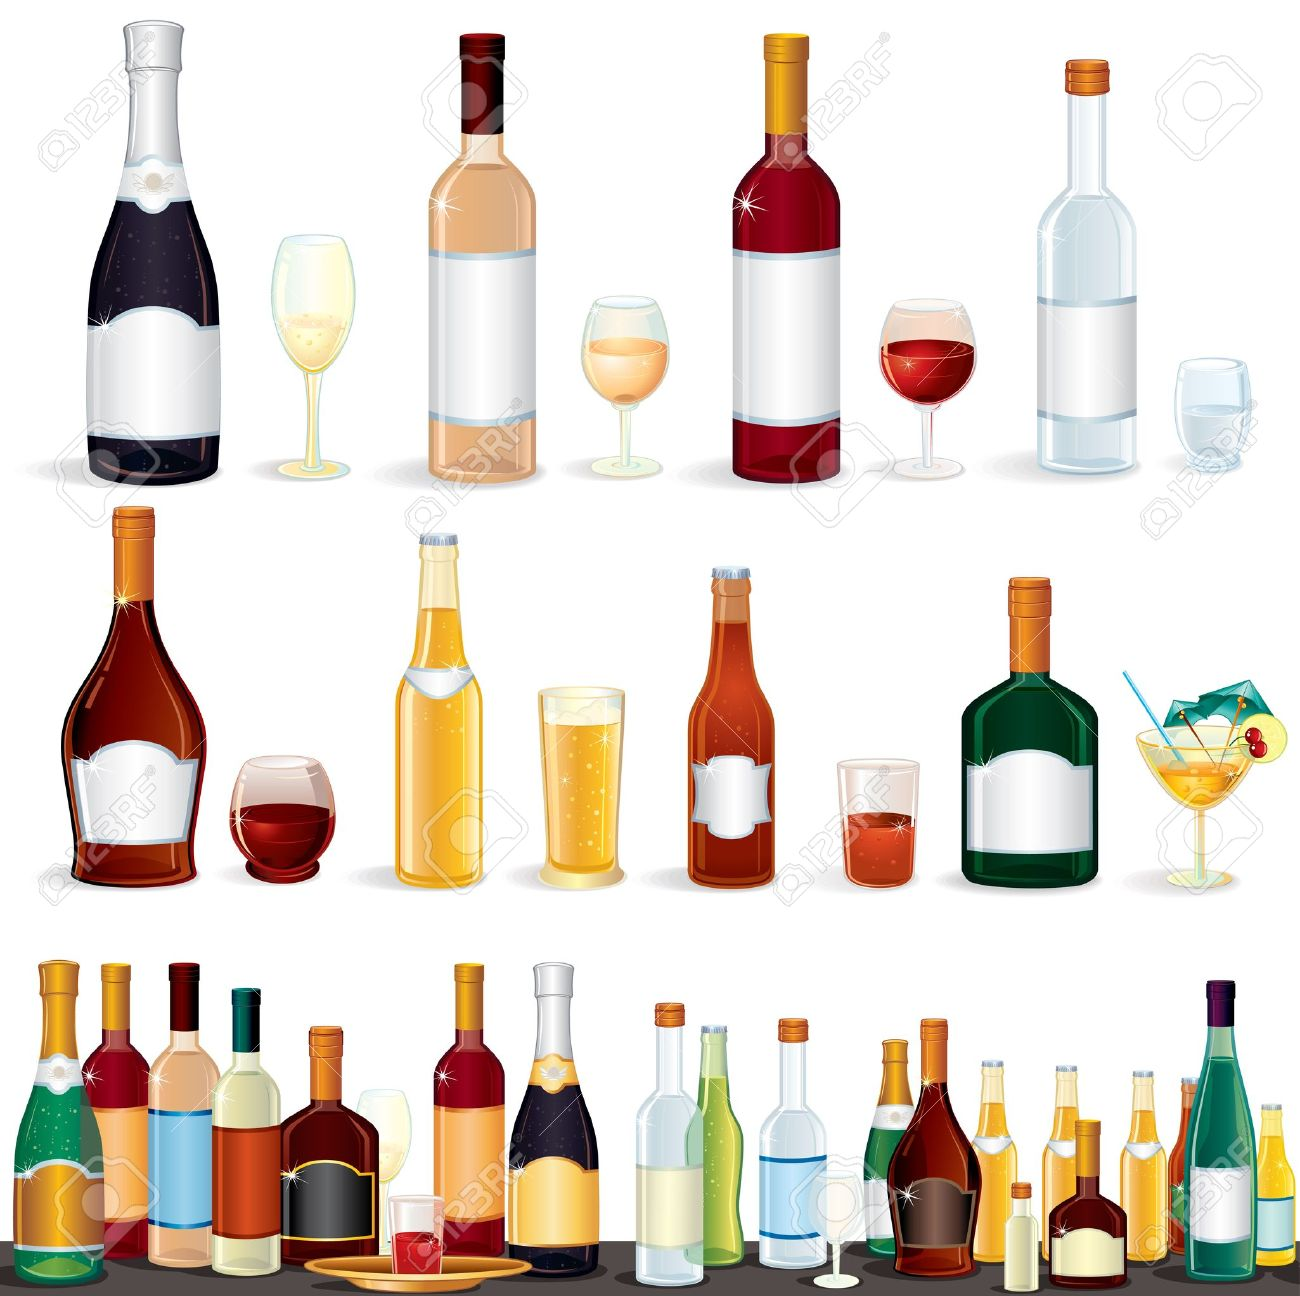 Drink clipart liquor Liquor Free Art Bottle free